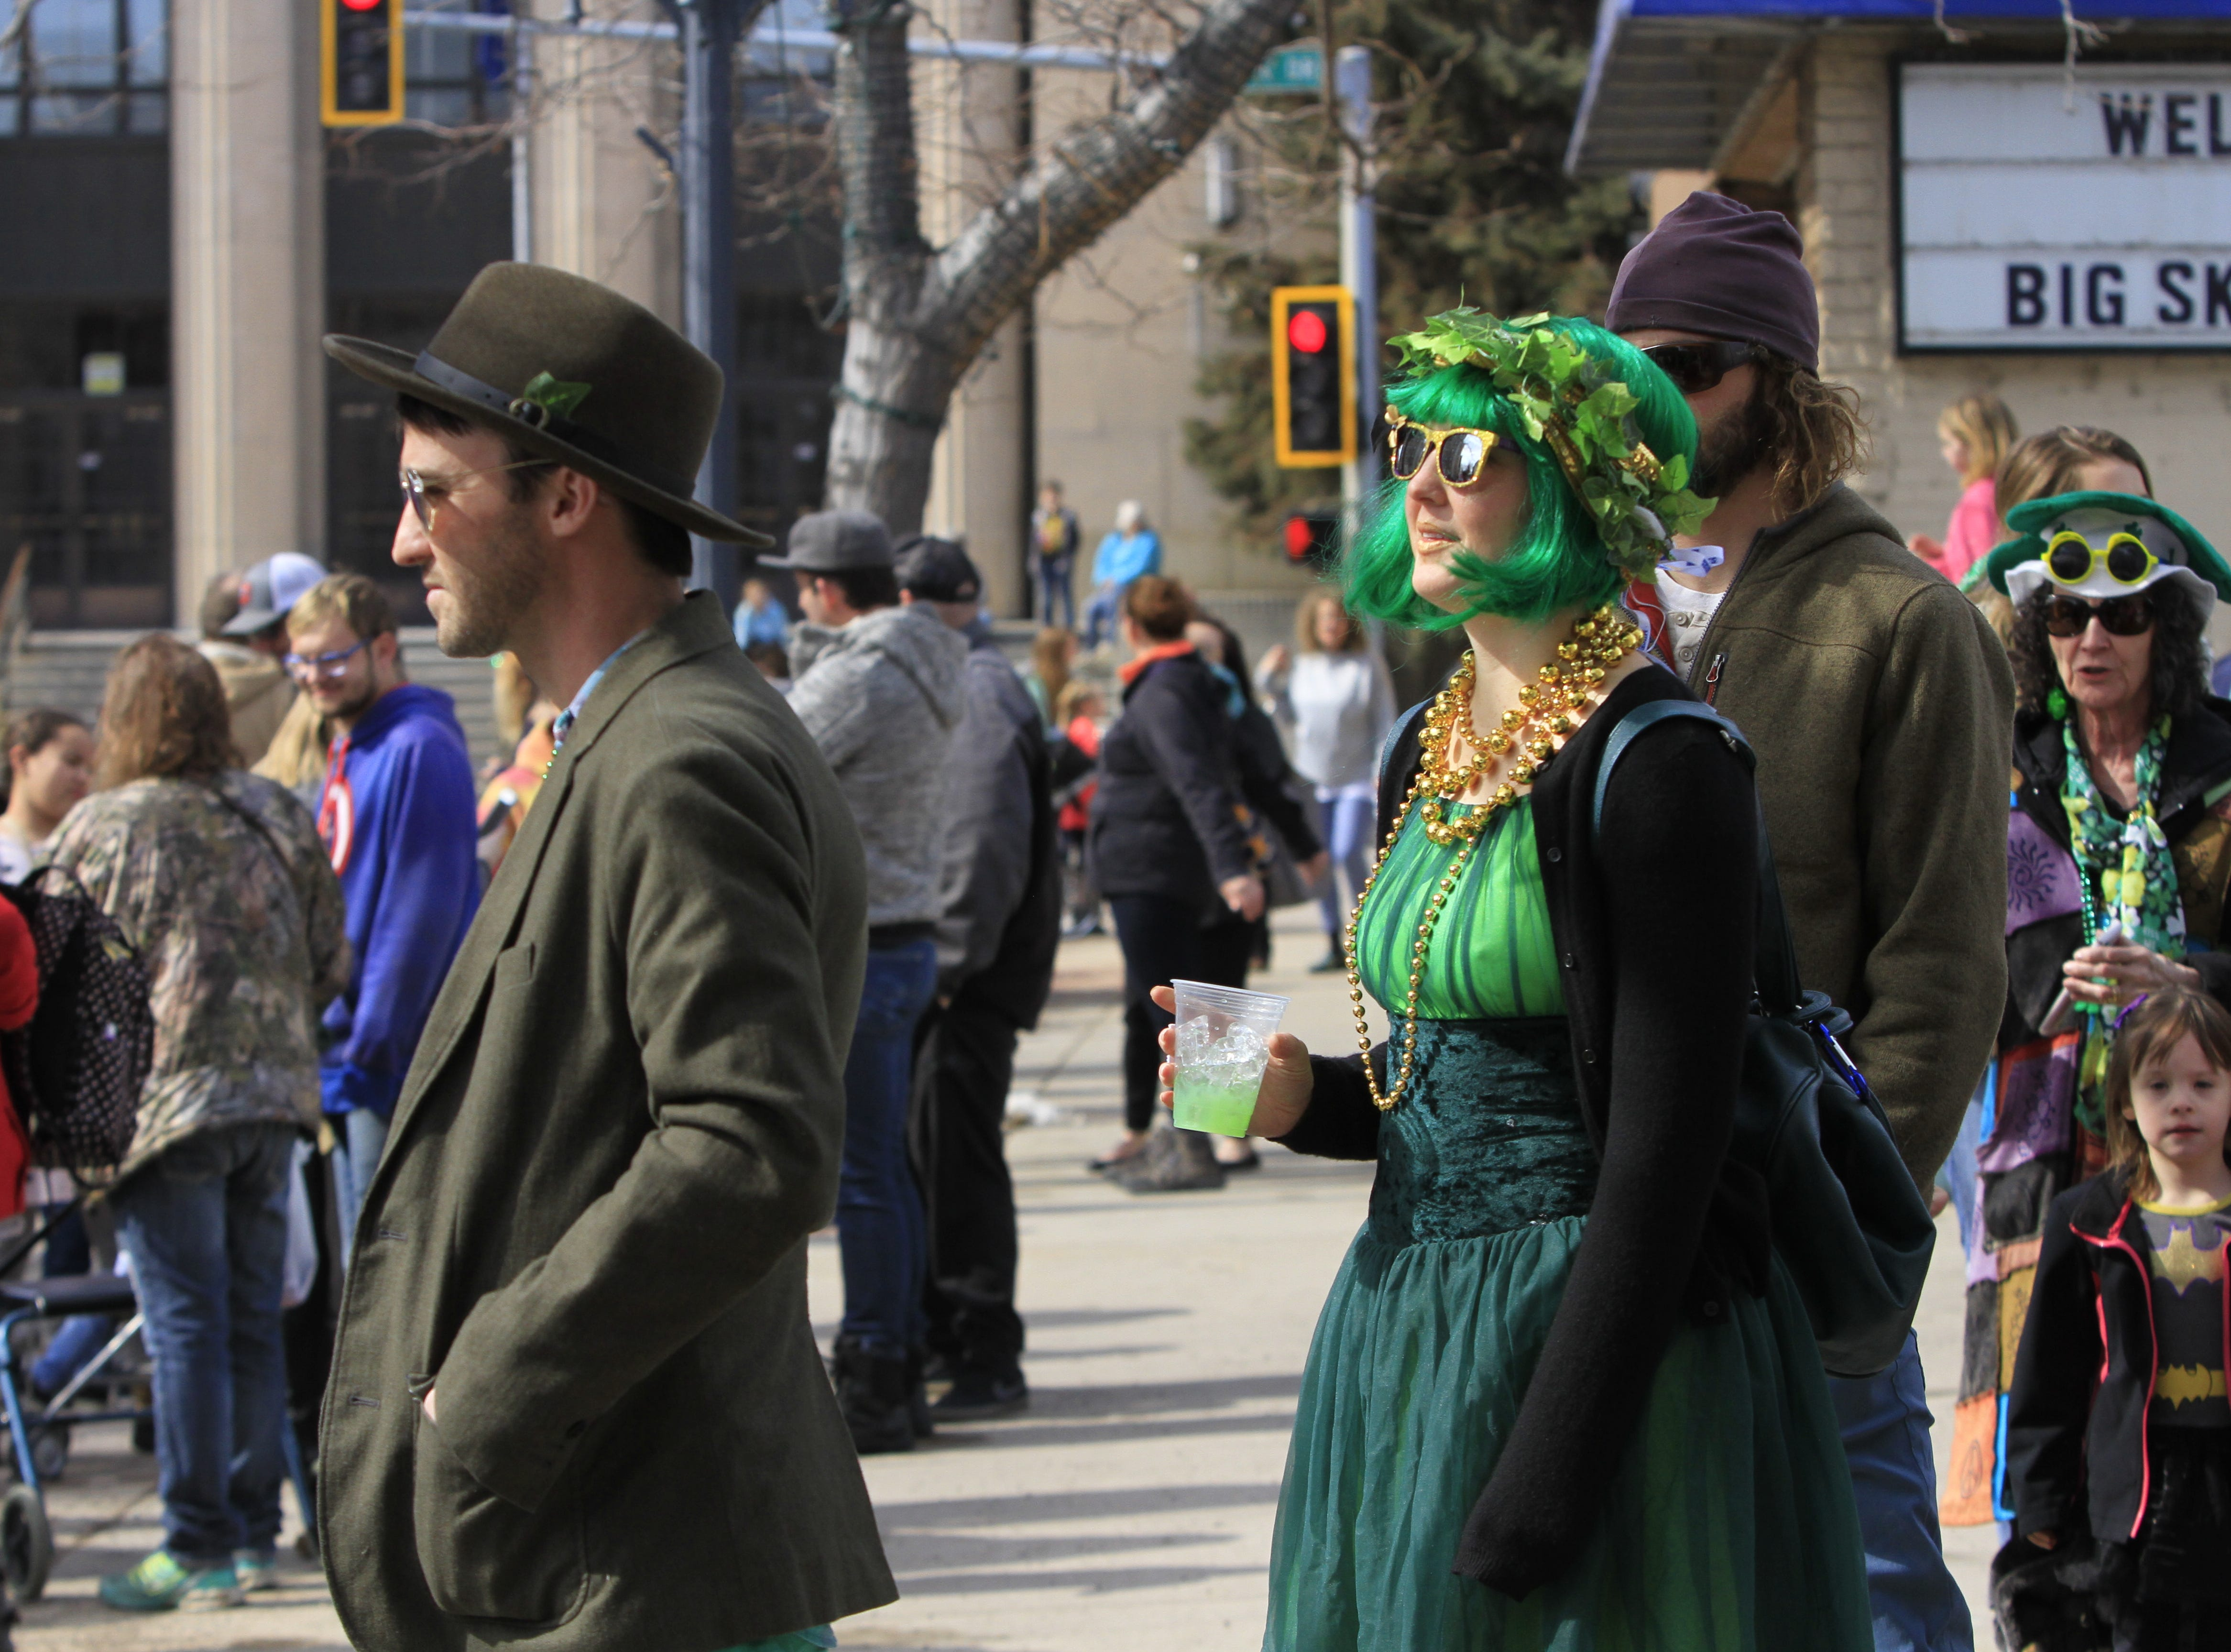 Great Falls' St. Patrick's Day parade on Saturday made the most of the beautiful weather for a festive gathering.